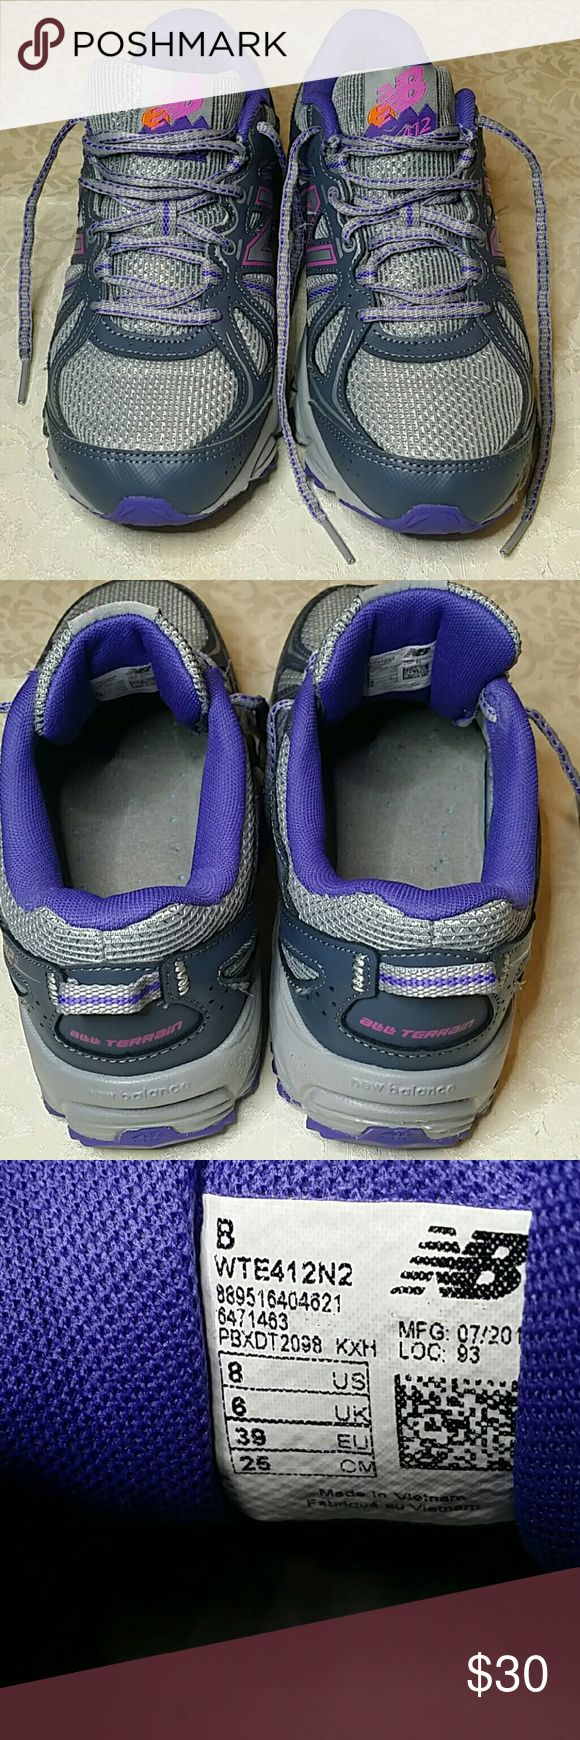 New Balance size 8 Trail Running Shoes New. Balance trail running shoes in size 8m. The are very pretty in light gray and dark gray with purple and hot pink accents. Mom wore these maybe 6 or 8 times. These are in excellent, clean condition. New Balance Shoes Athletic Shoes